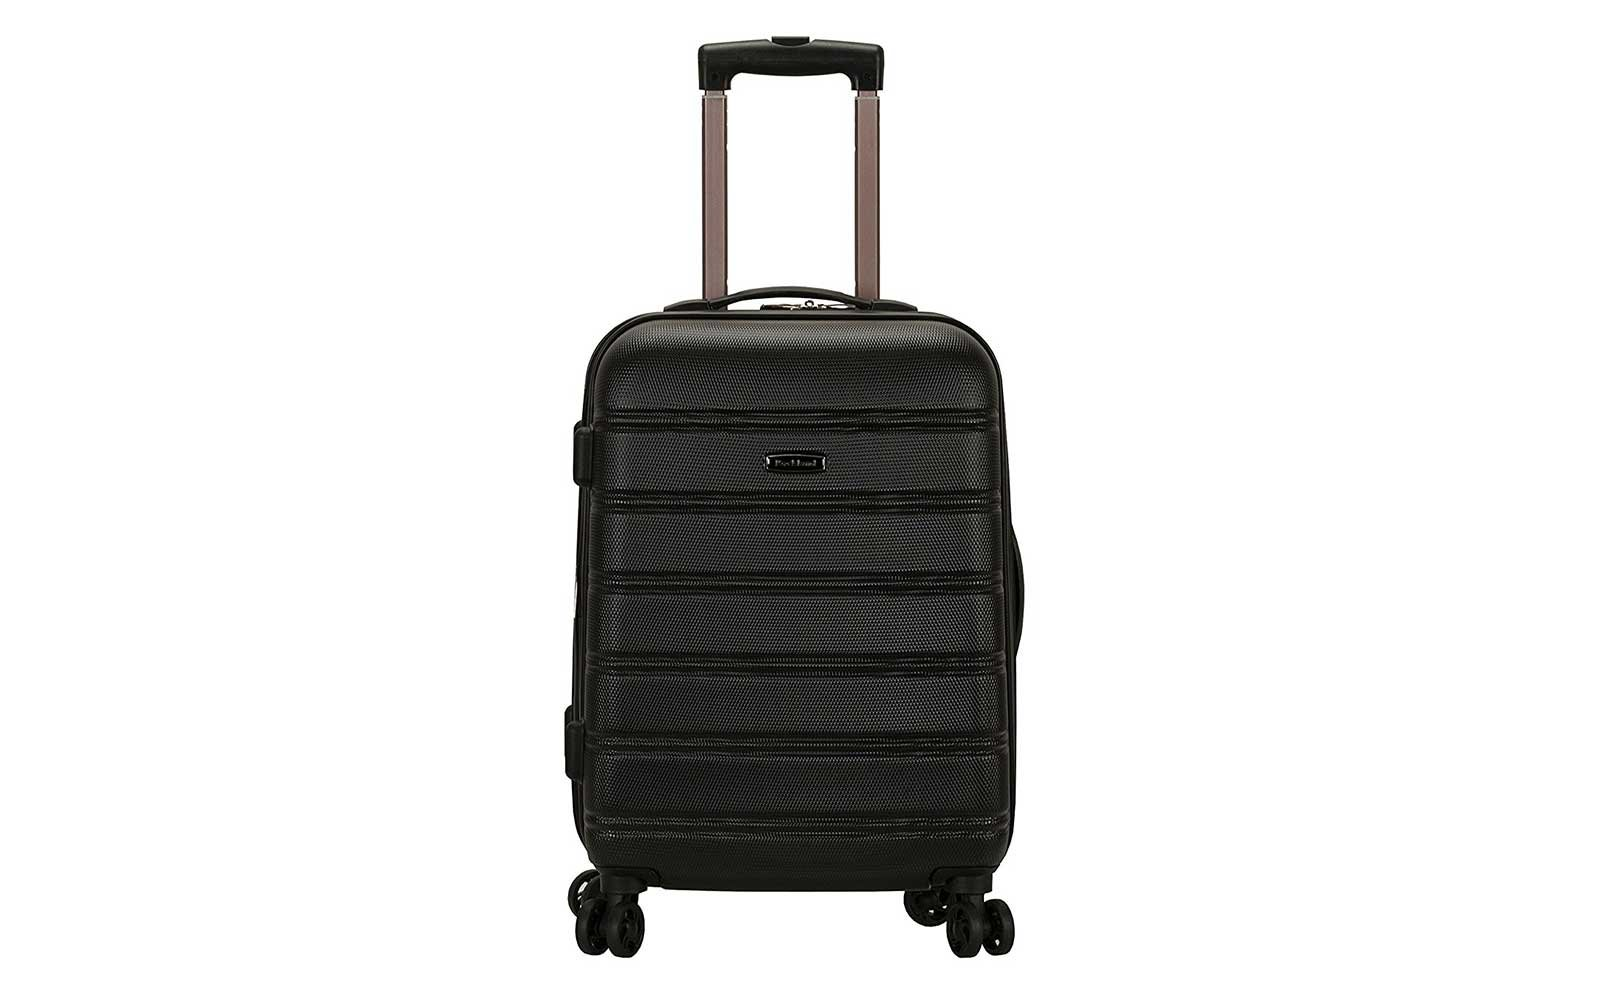 Rockland Melbourne 20-inch Expandable Carry-on Luggage